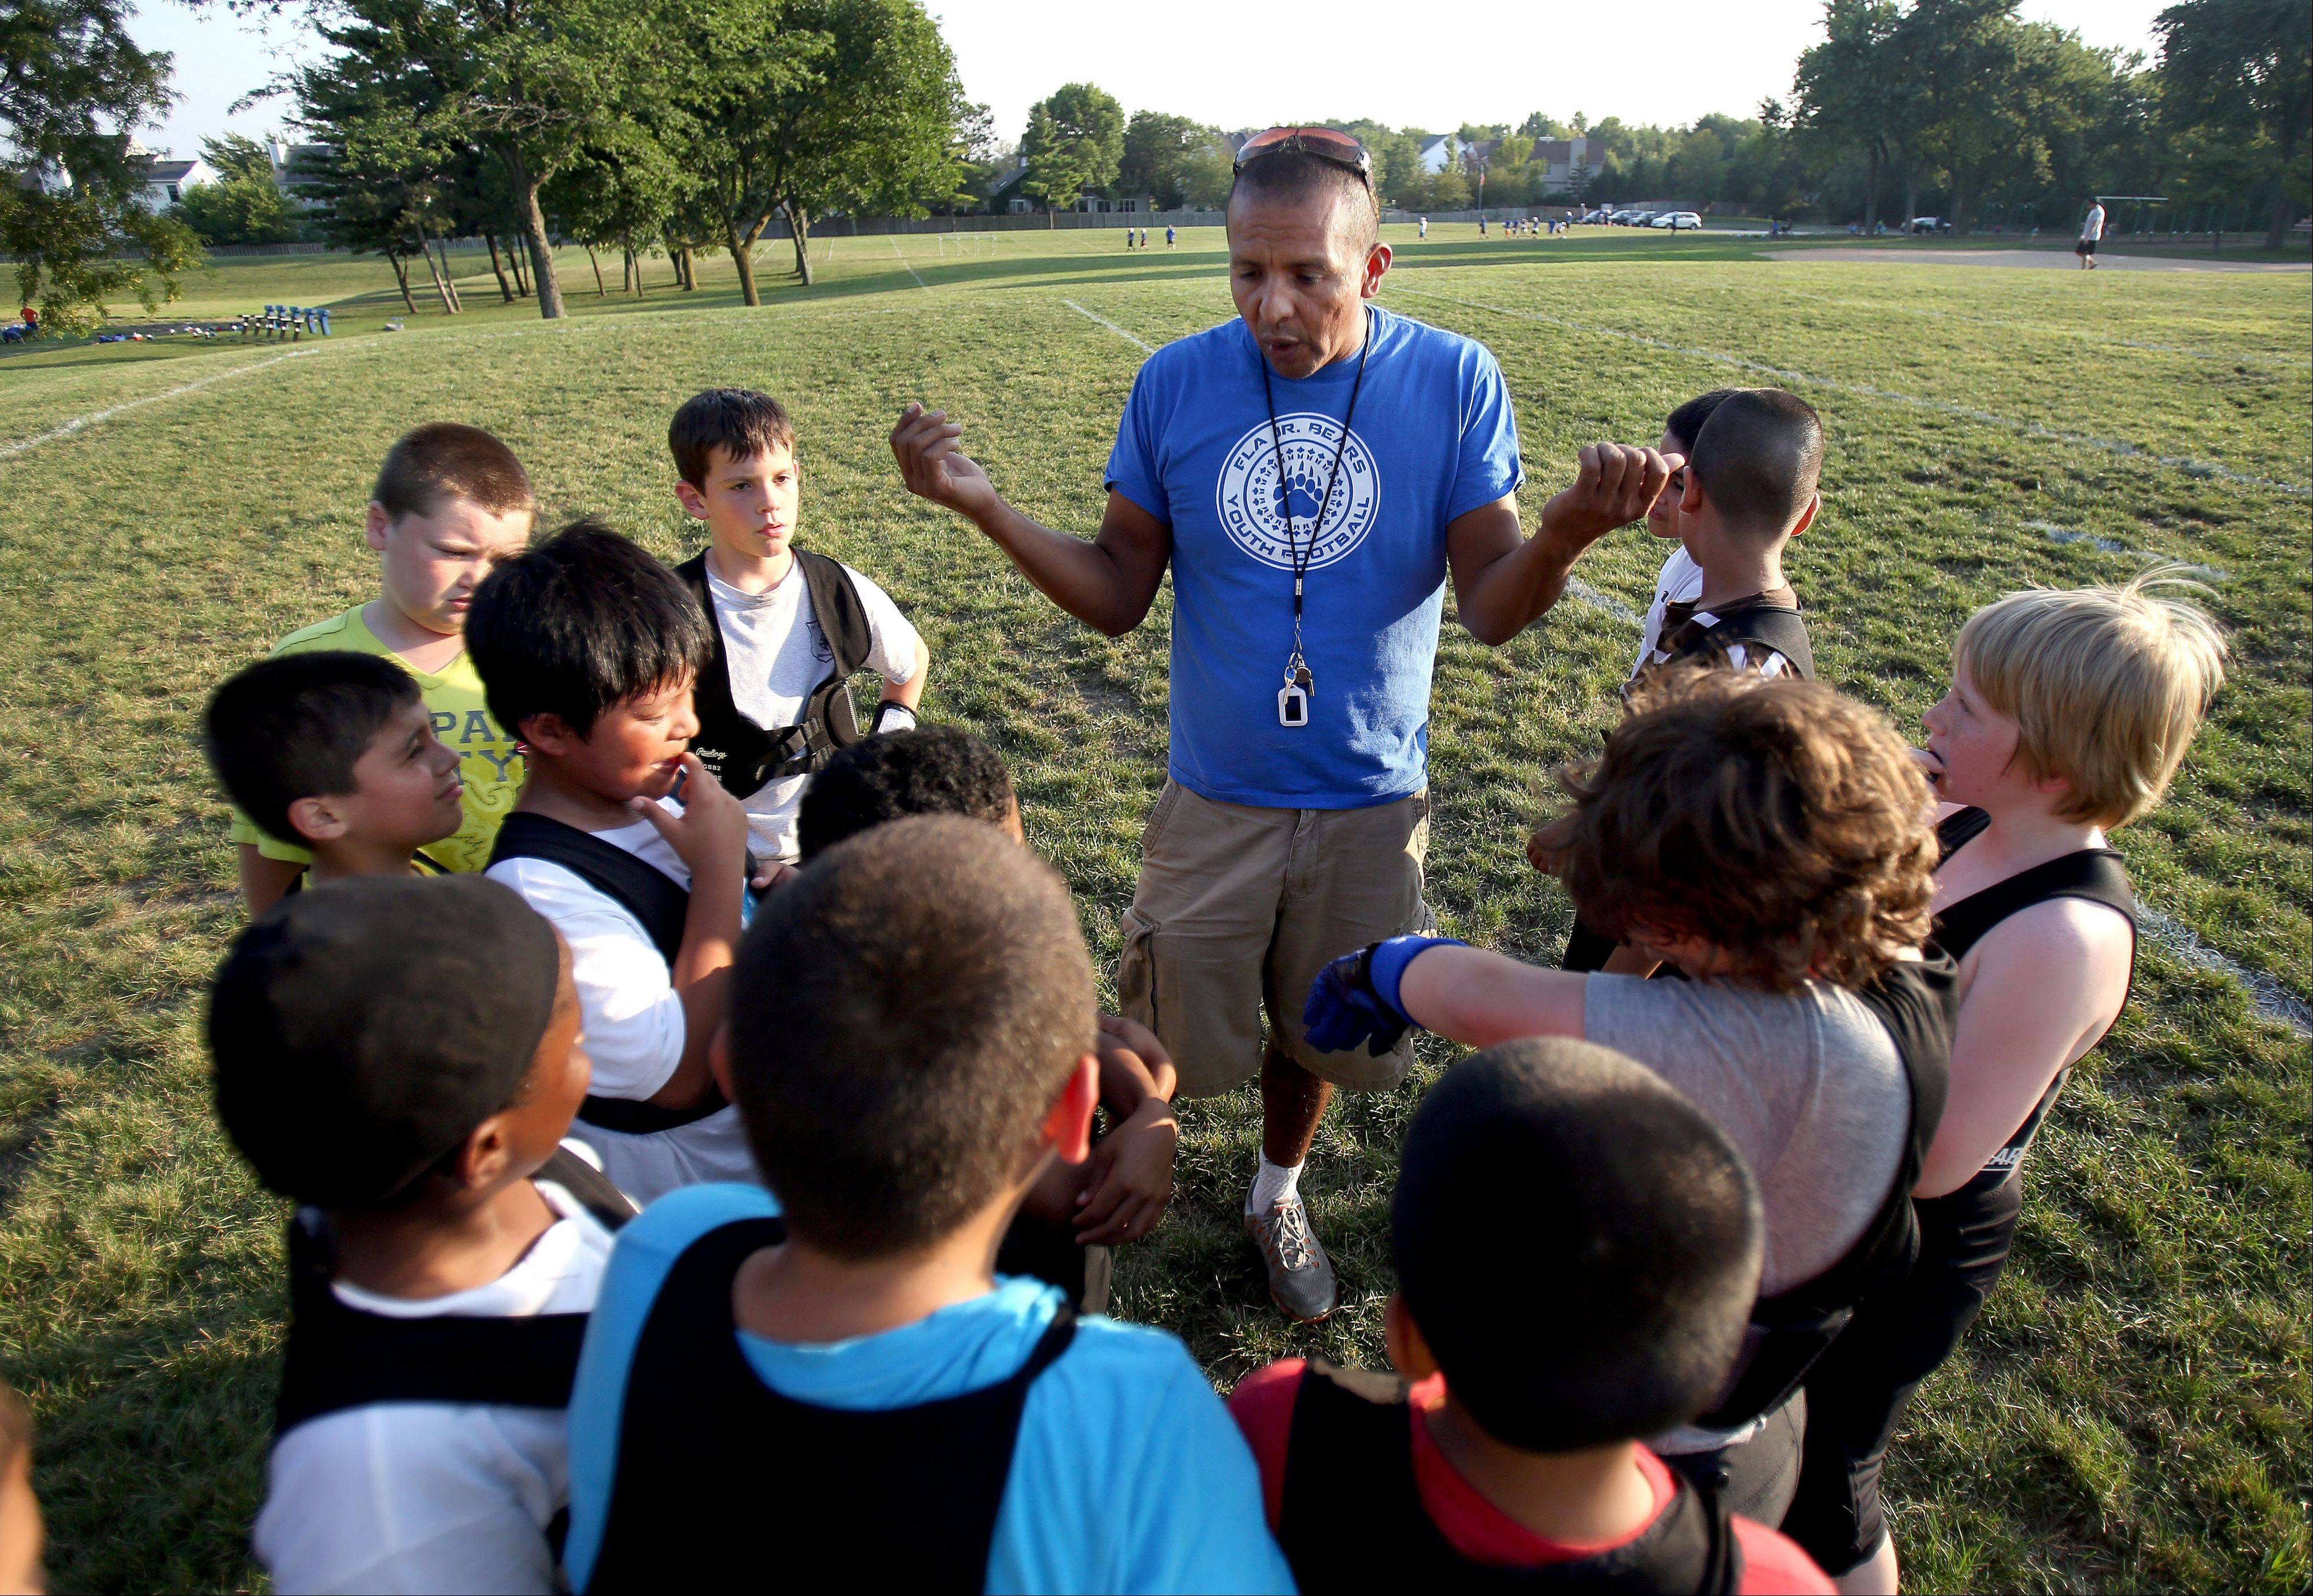 Wil Juarez, vice president of the Ela Junior Bears youth football team, talks to his players during practice at Knox Field in Lake Zurich.